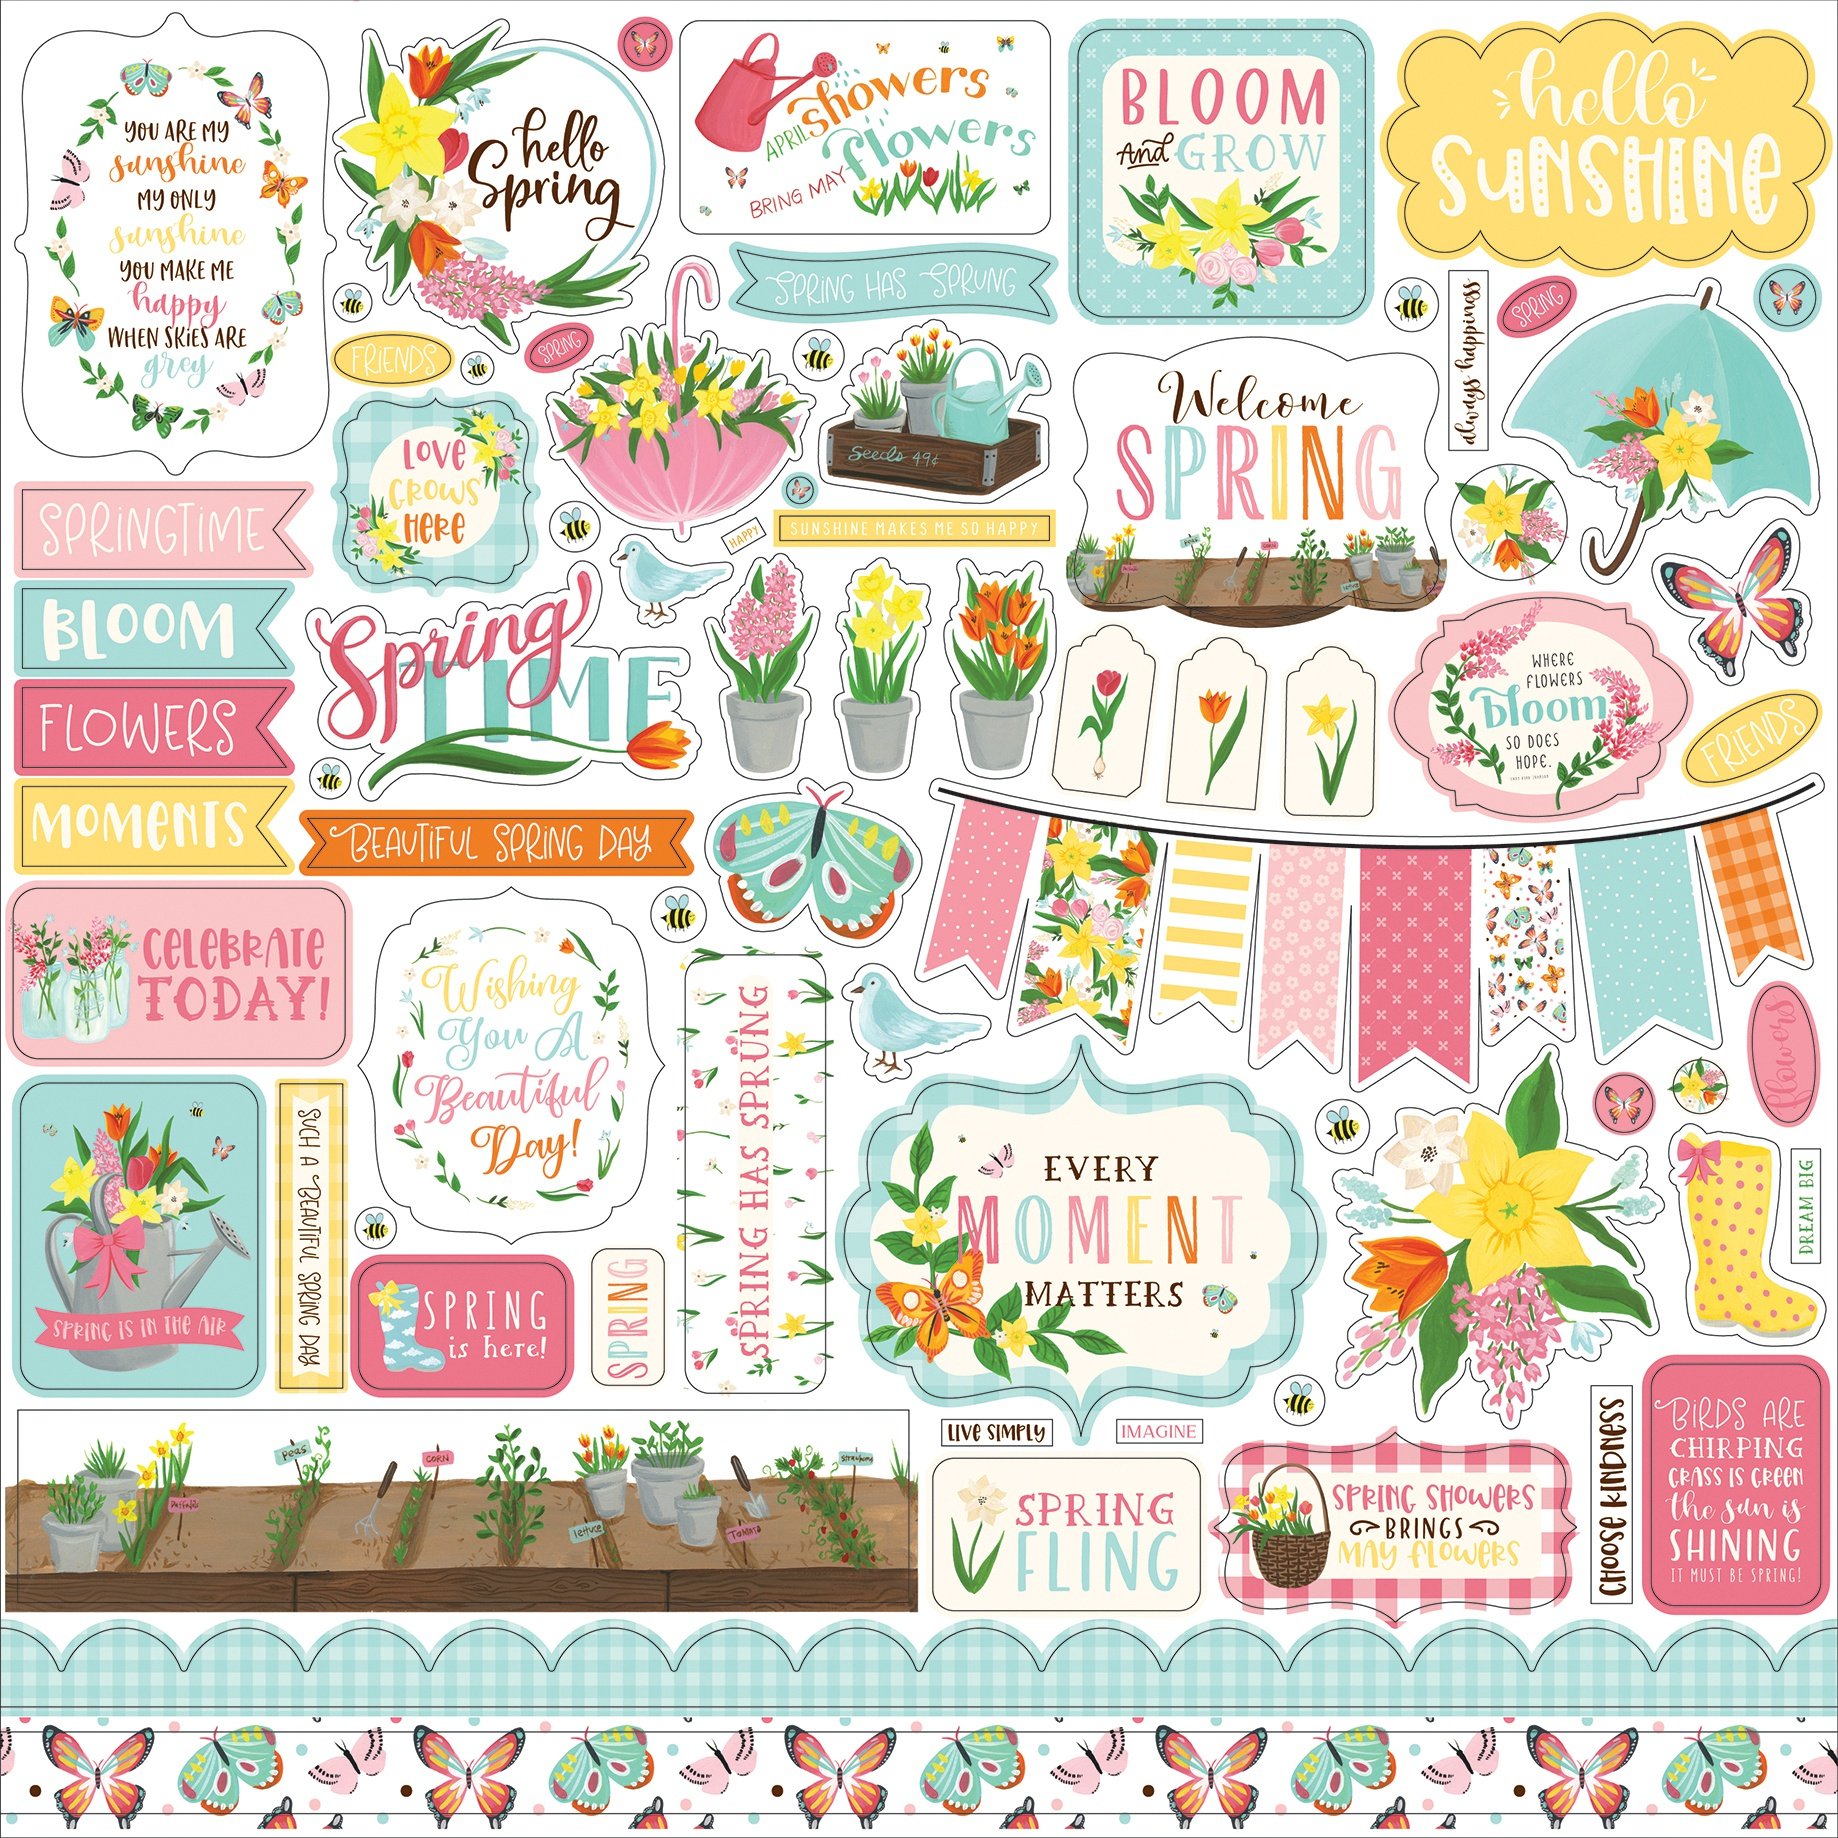 I Love Spring - Element Stickers